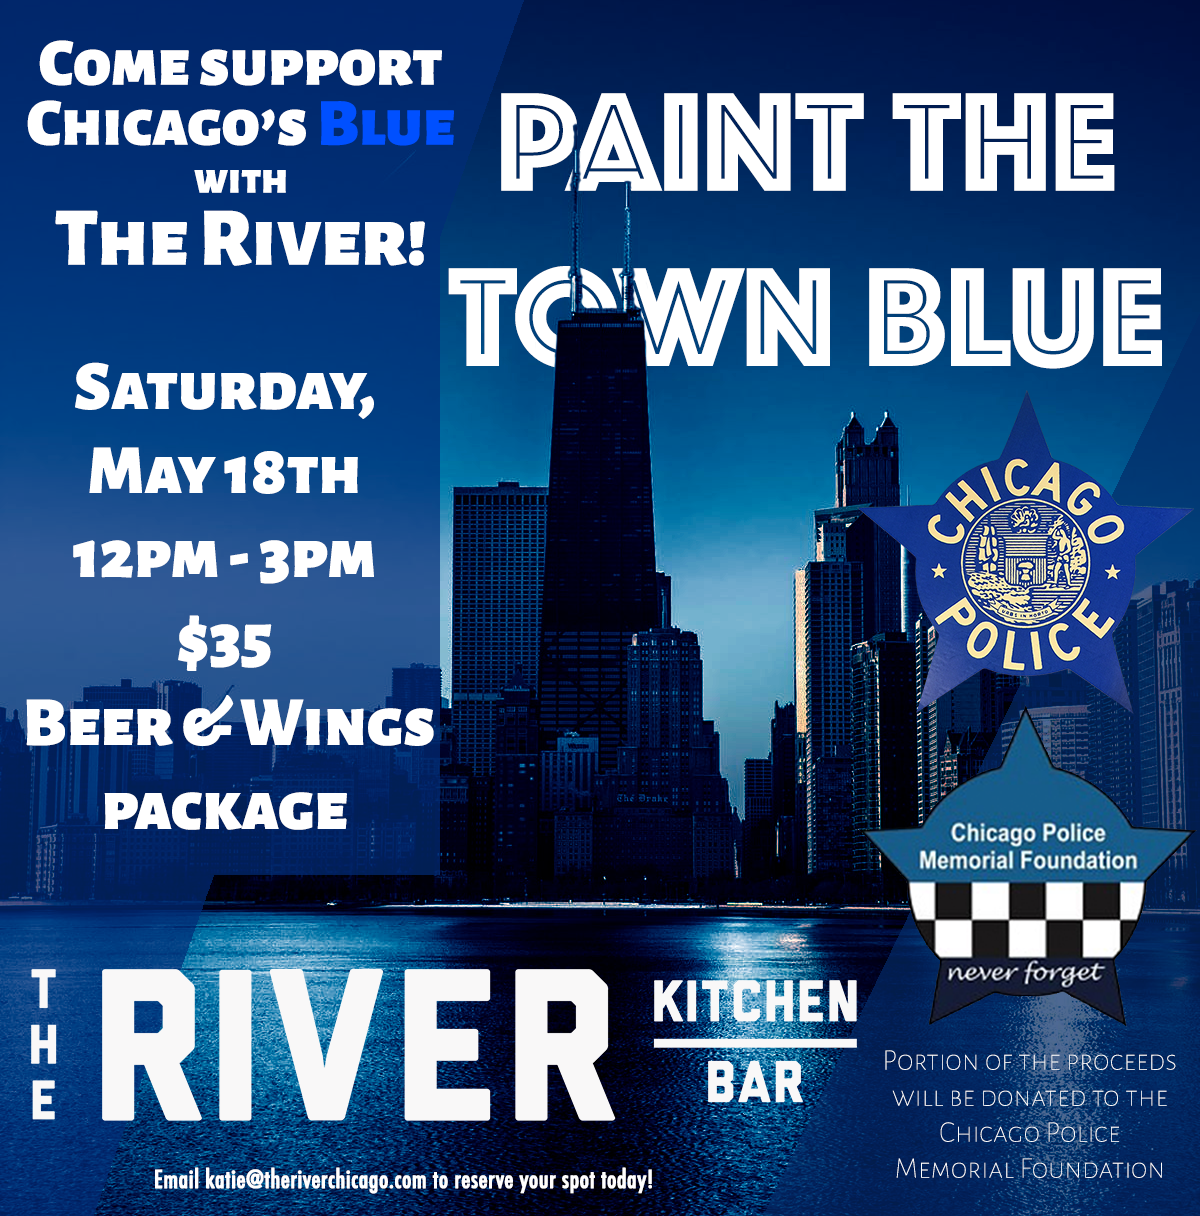 TheRiver-CPDnoFlagUpdate1 copy.png